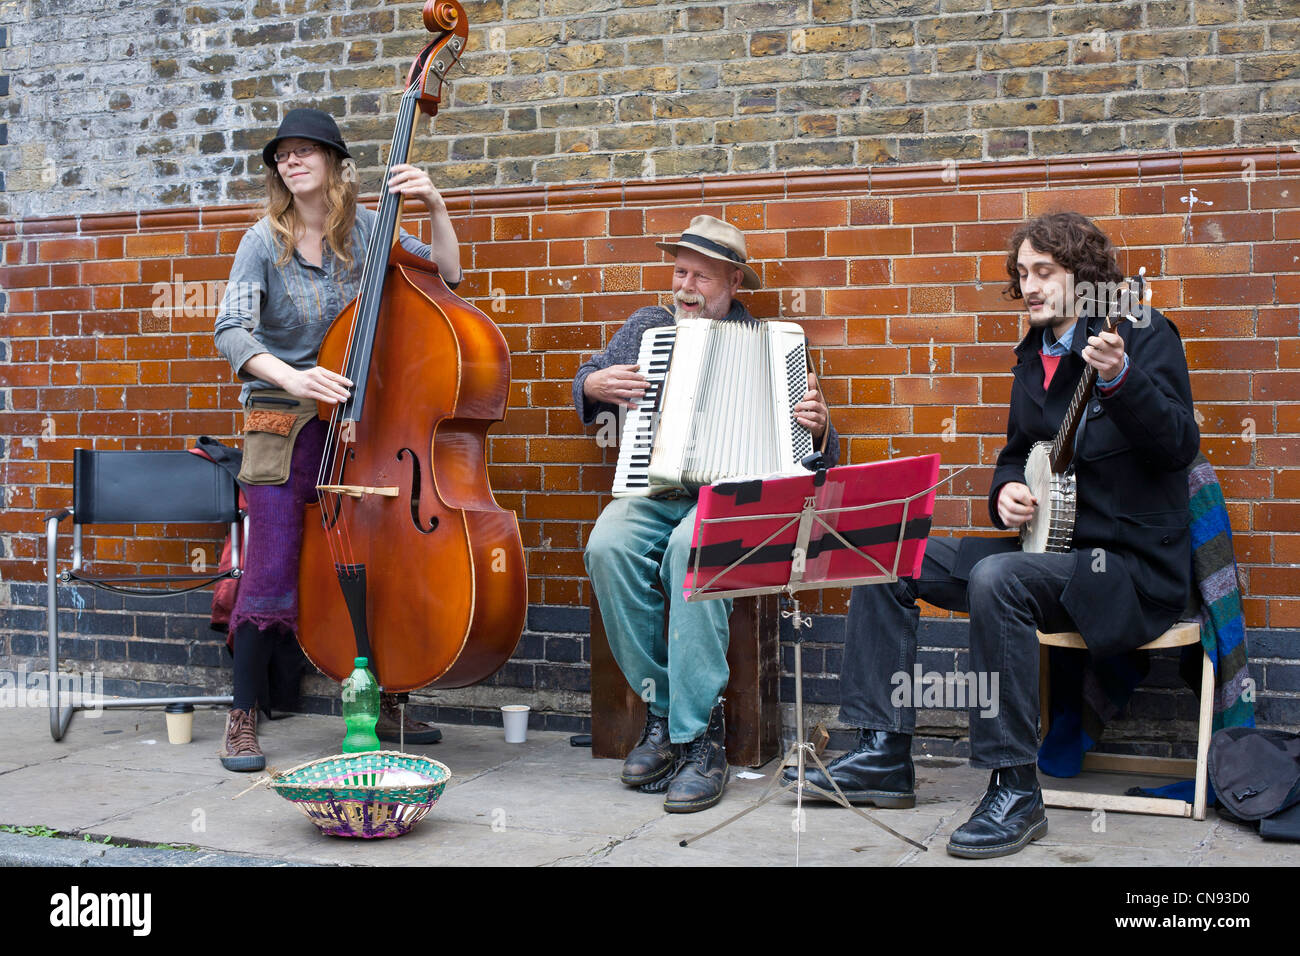 United Kingdom, London, East End, Columbia Road, musicians playing at the flowers market on a Sunday morning - Stock Image